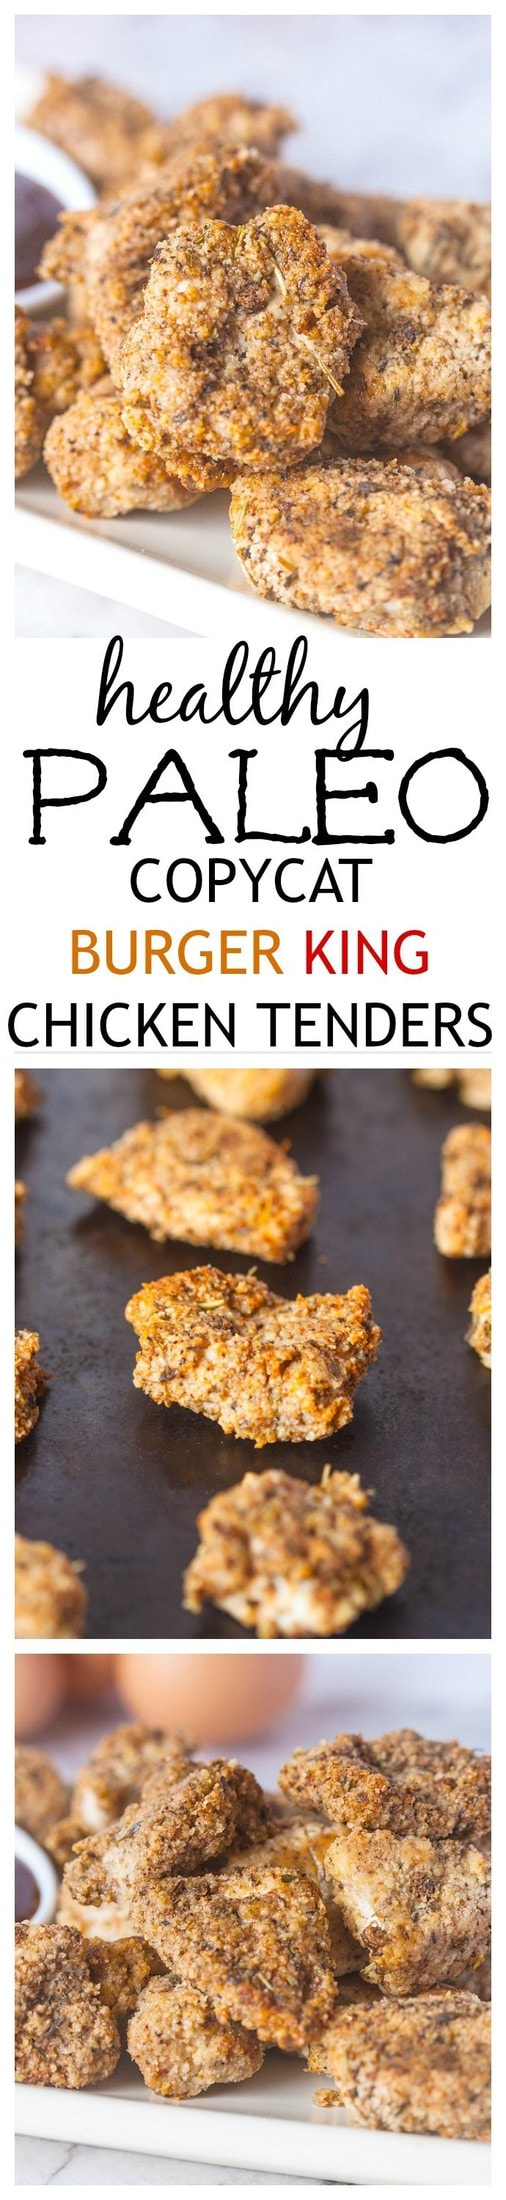 Copycat {PALEO FRIENDLY} Burger King Chicken Tenders- A Paleo twist on Burger King's infamous chicken tenders- Baked not fried for a much healthier and delicious option- Super simple and a guaranteed hit for an easy weeknight meal or to pack for lunches!  @thebigmansworld - thebigmansworld.com